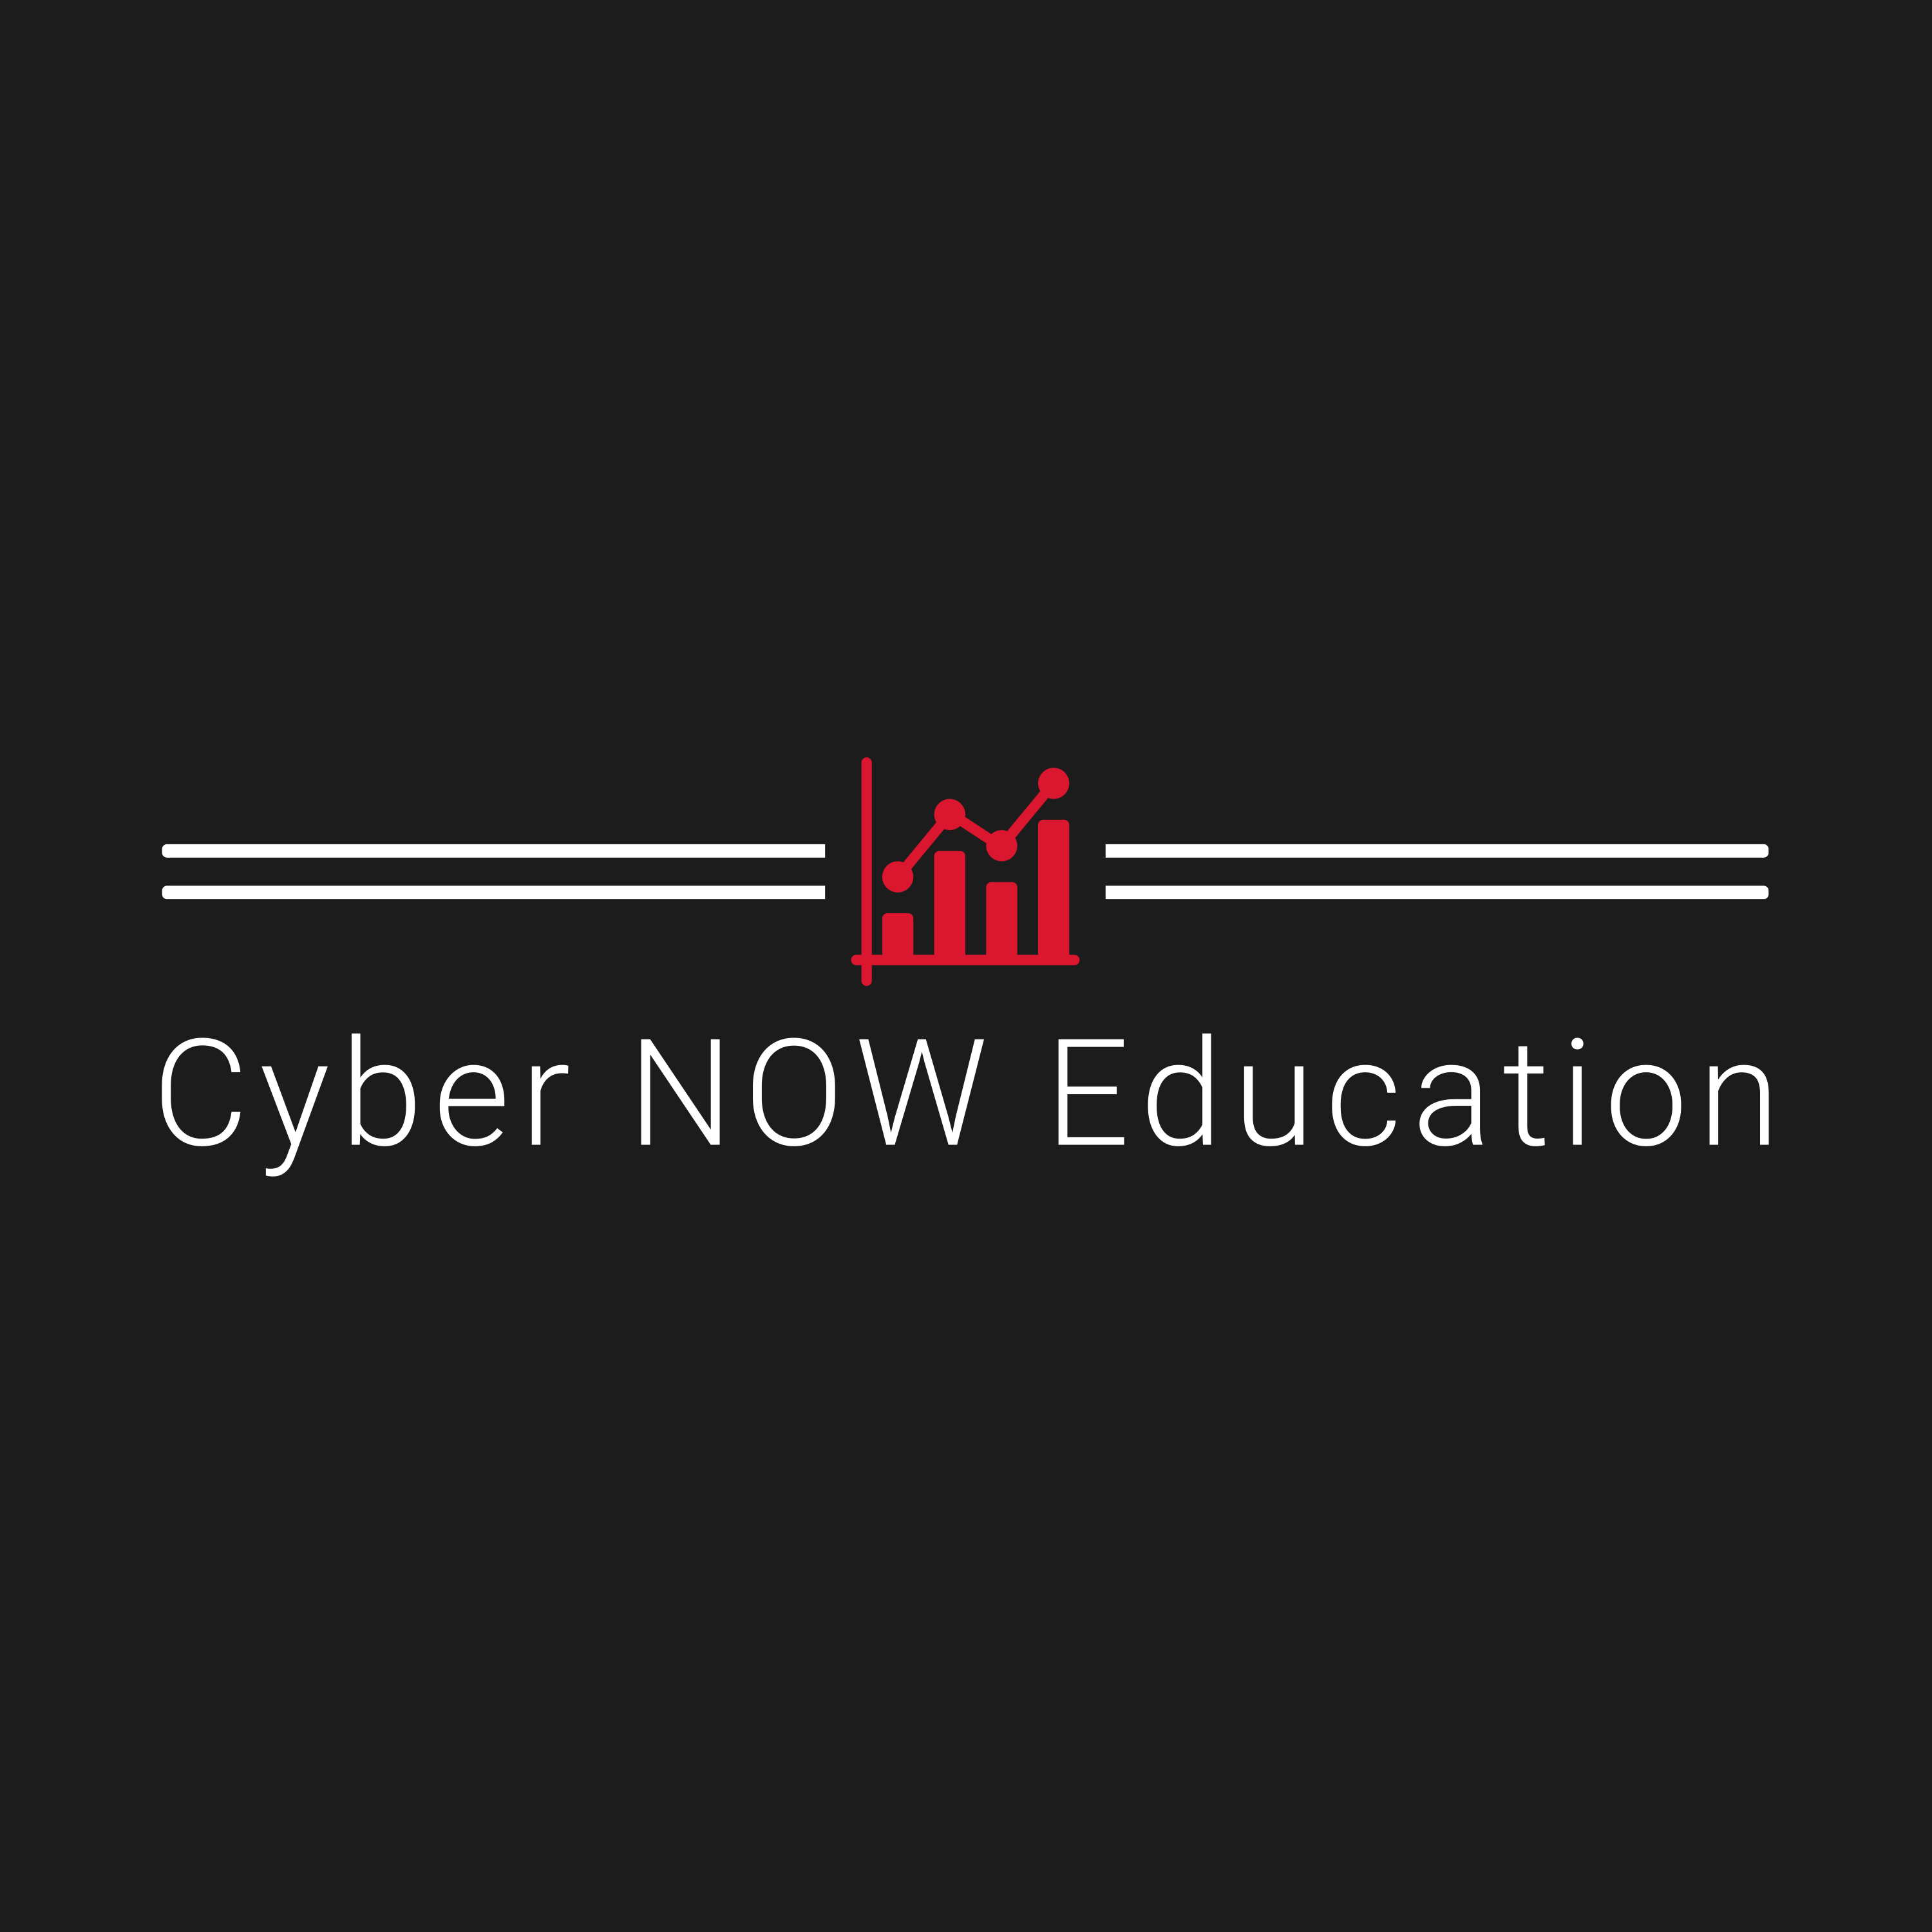 Cyber NOW Education